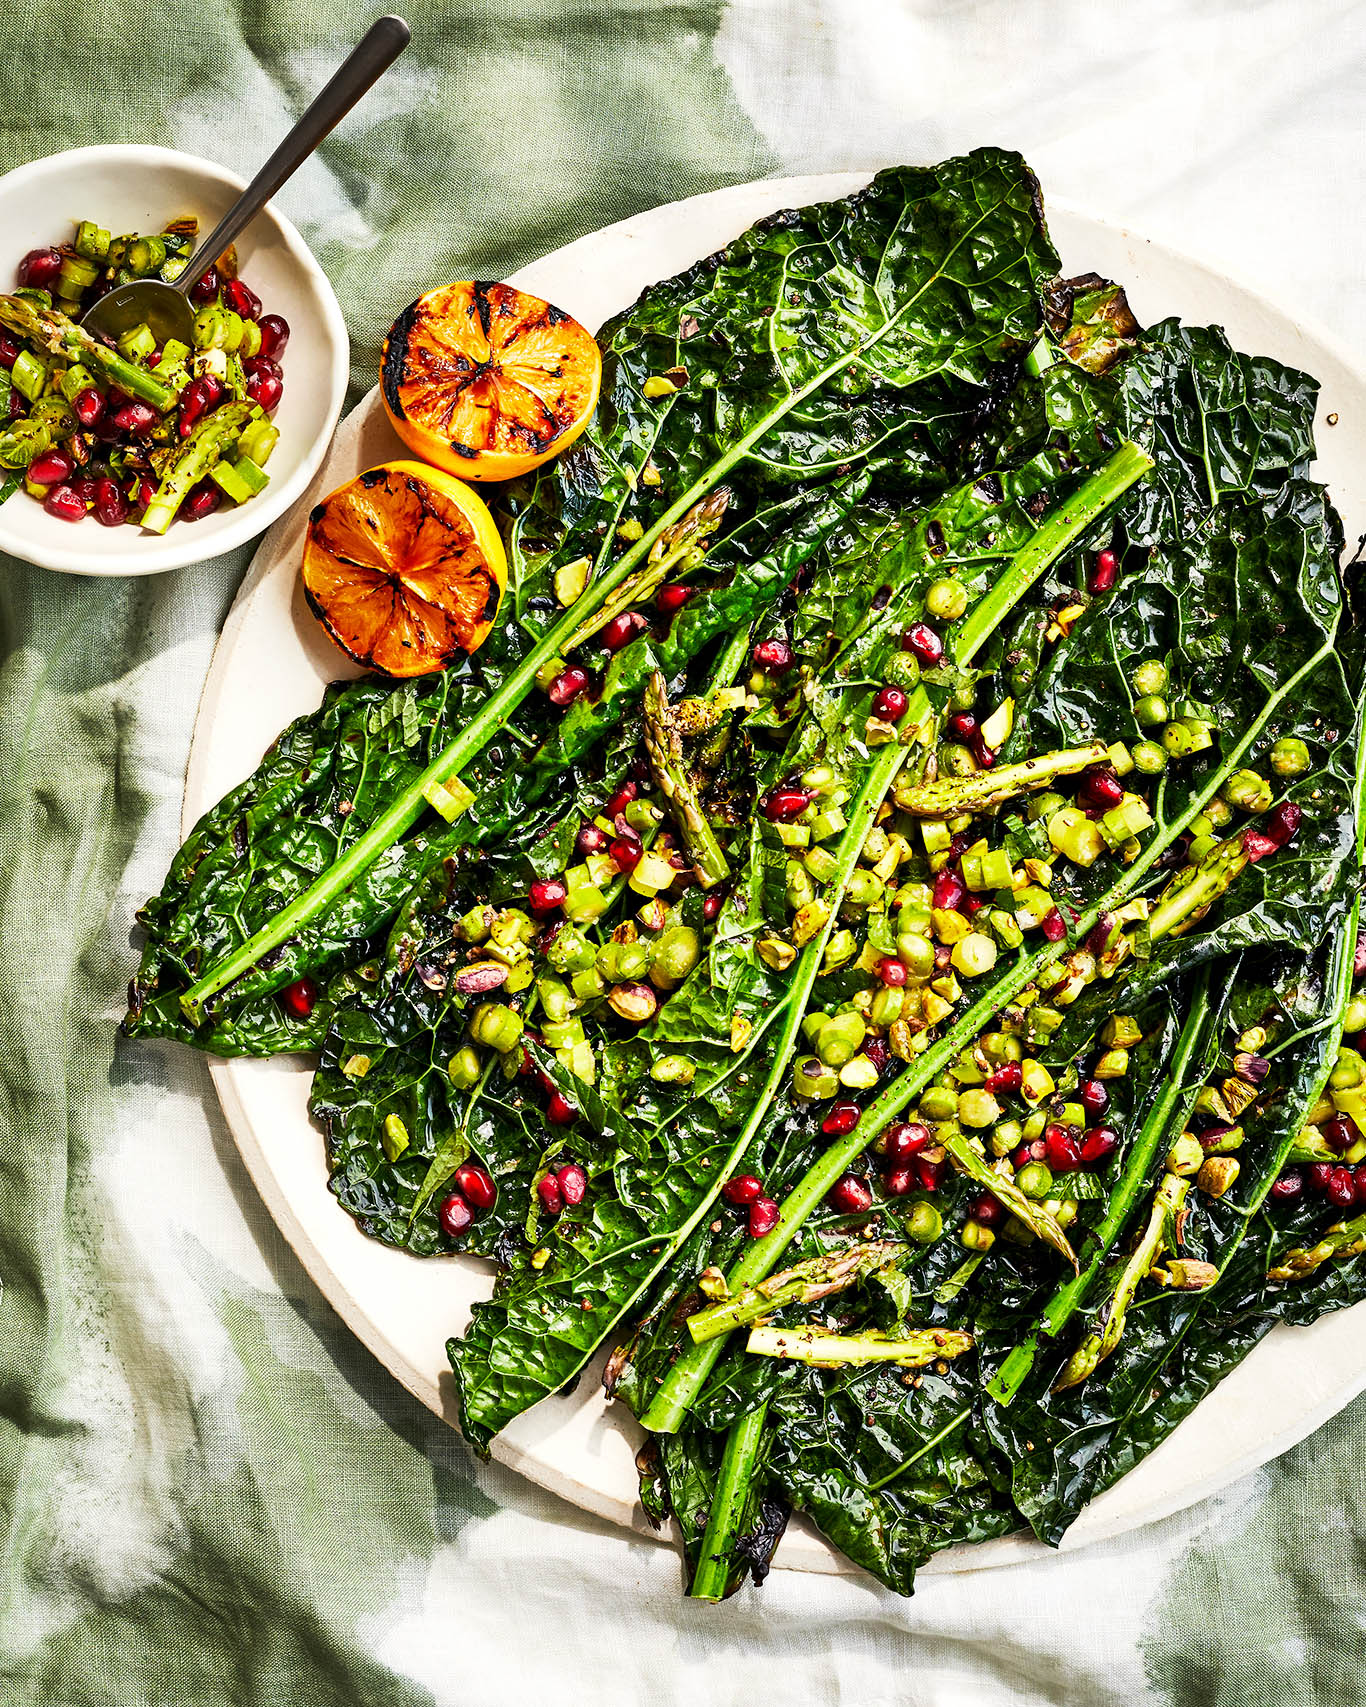 Grilled Kale & Meyer Lemons with Asparagus-Pomegranate Relish